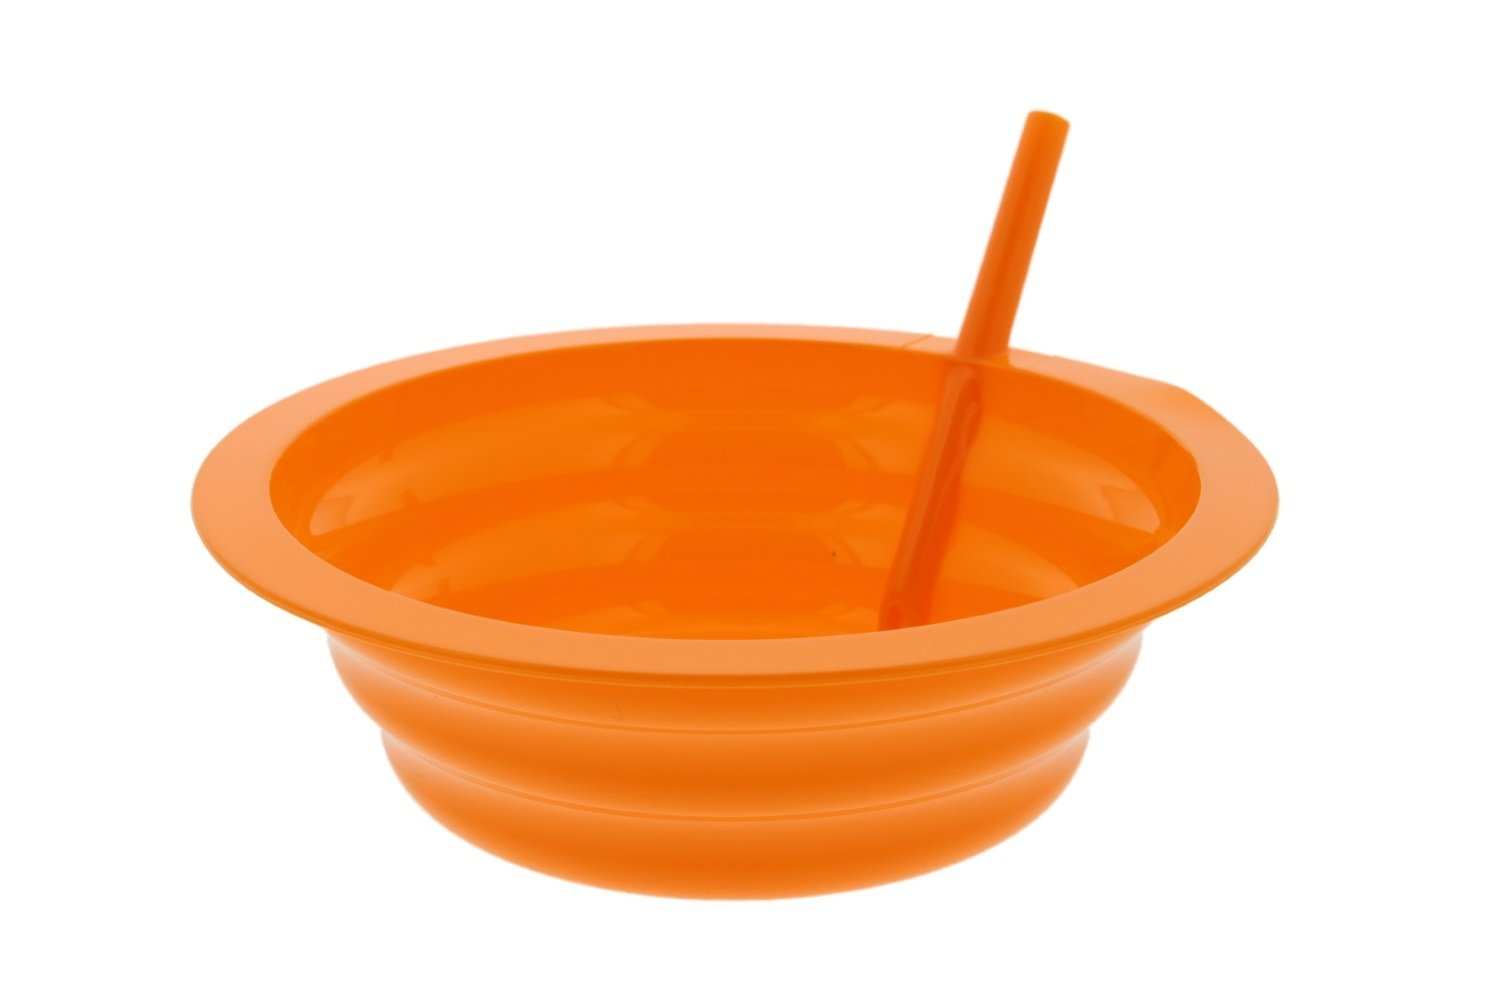 Arrow Sip-A-Bowl With Built In Straw, 22 oz, Blue, Purple,Green, Orange (4 Pack) by Arrow Home Products (Image #8)